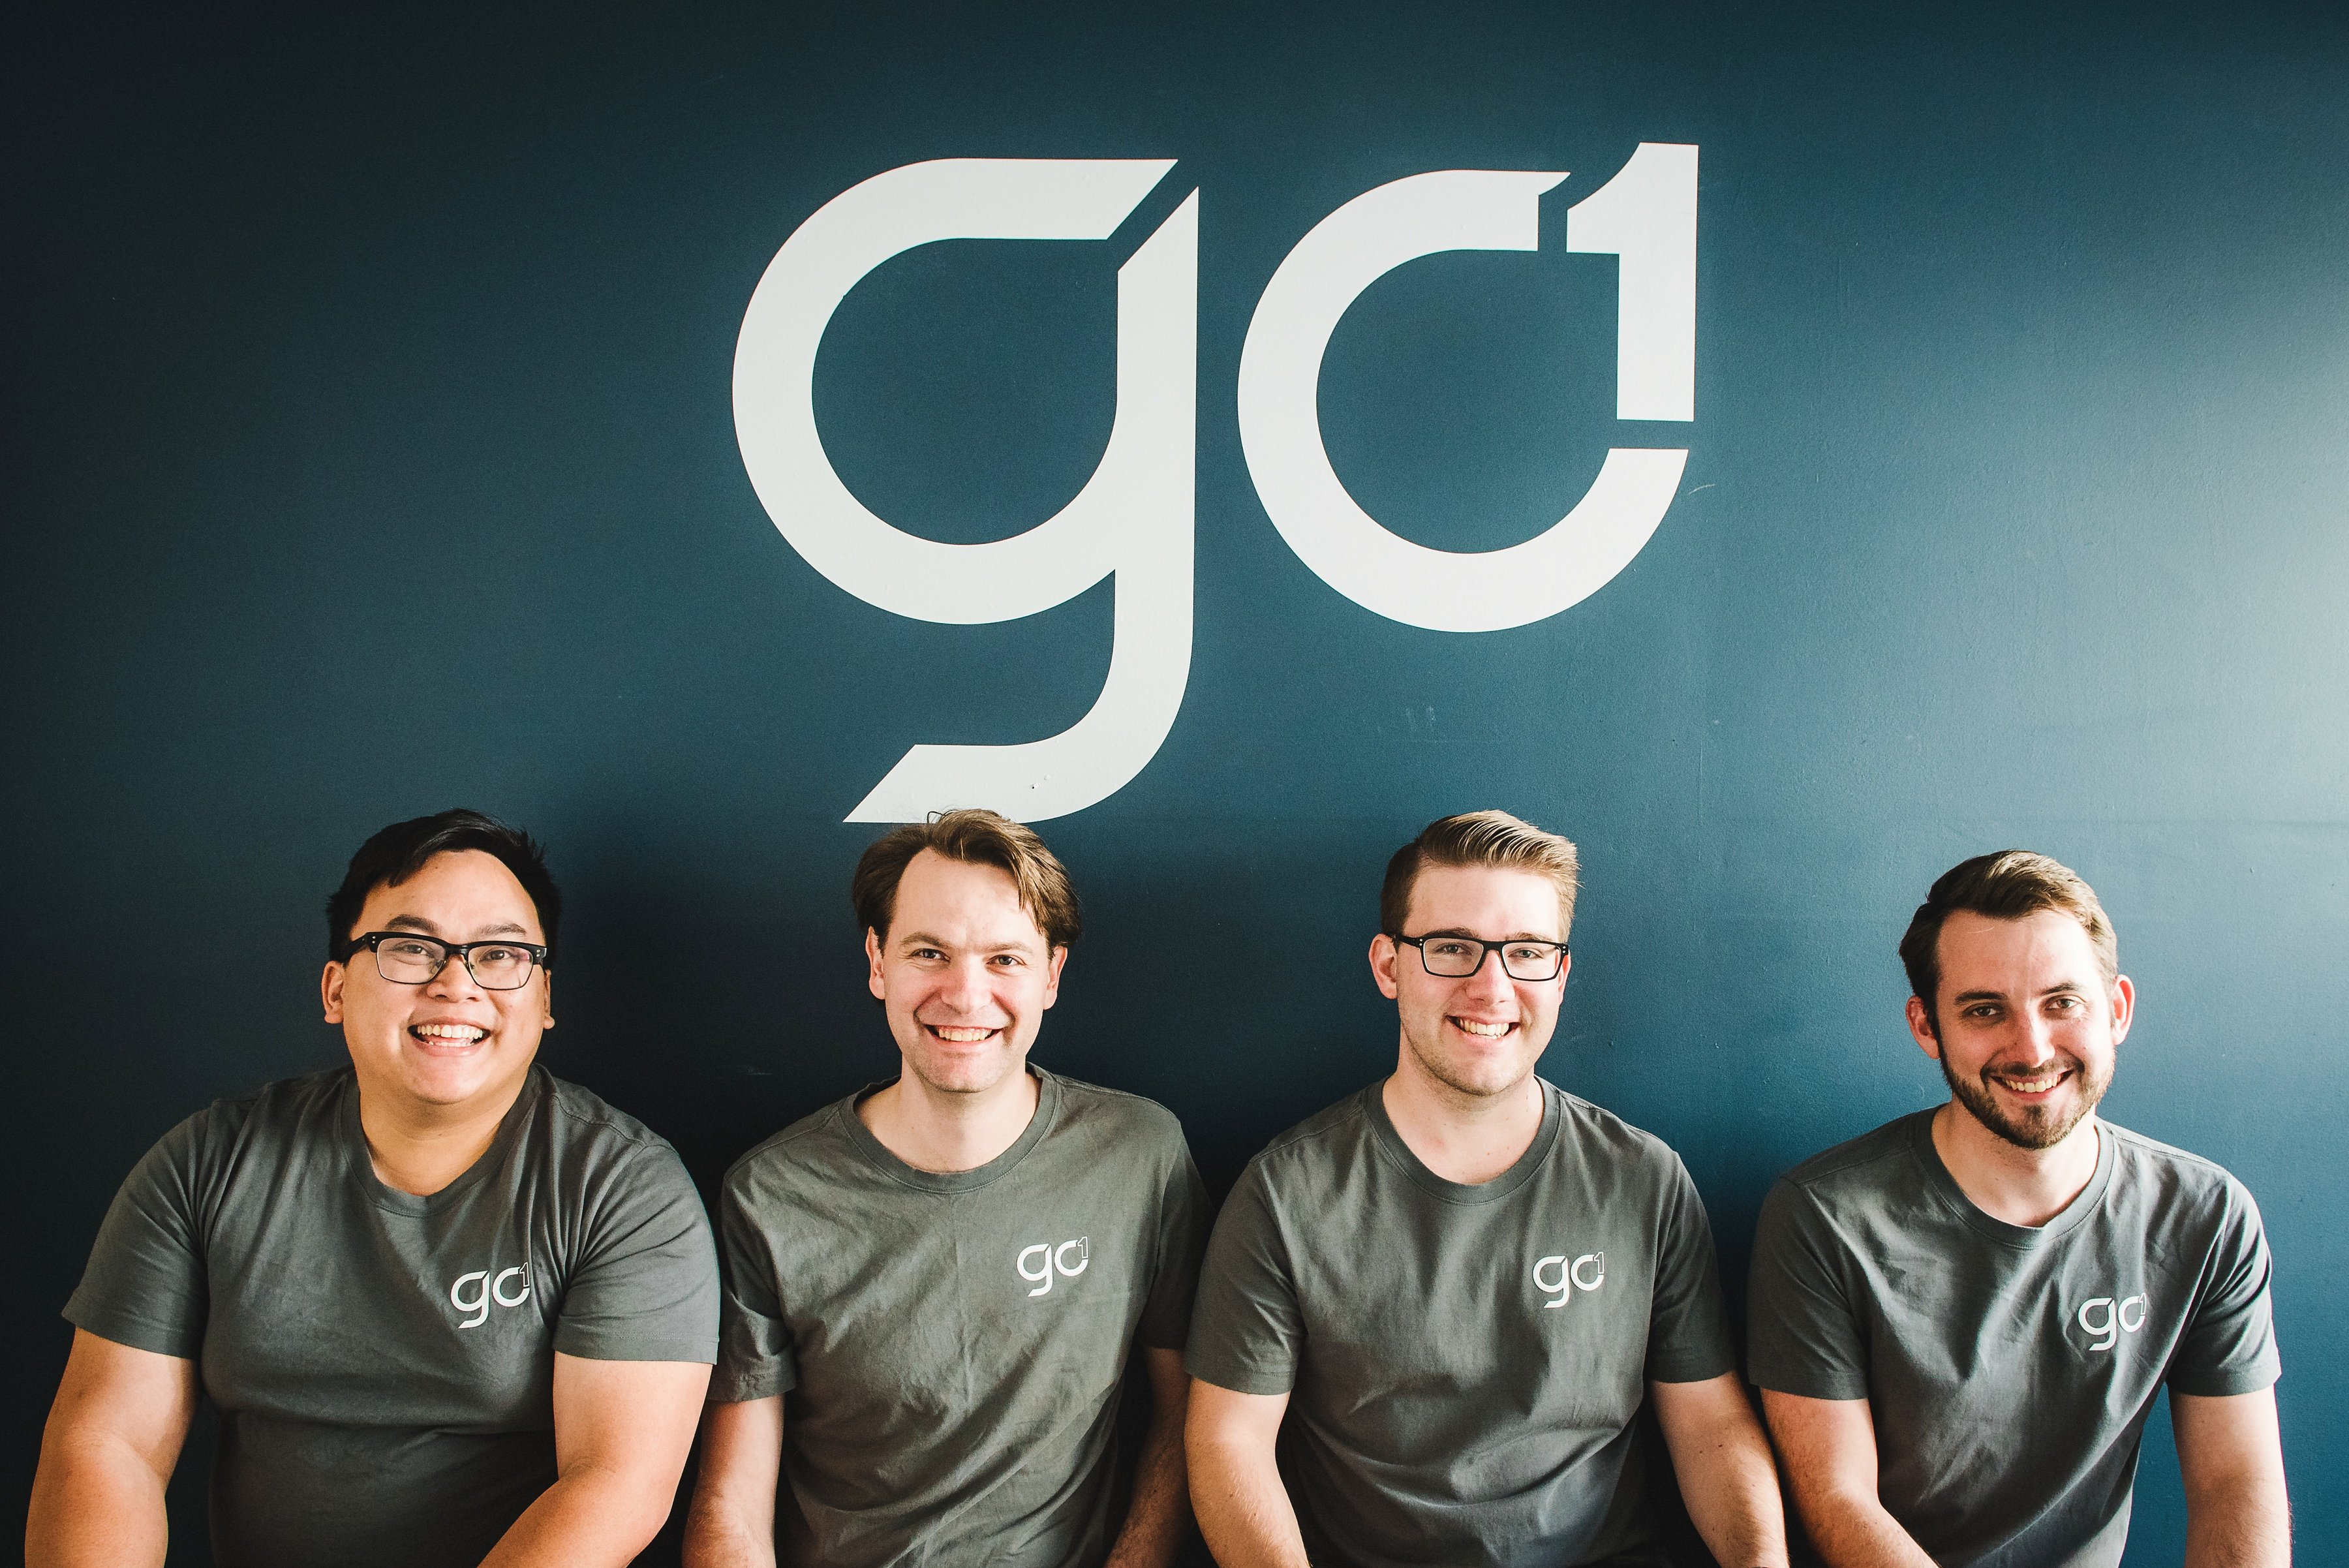 Photo of the GO1 team that powers user's login experiences with Auth0